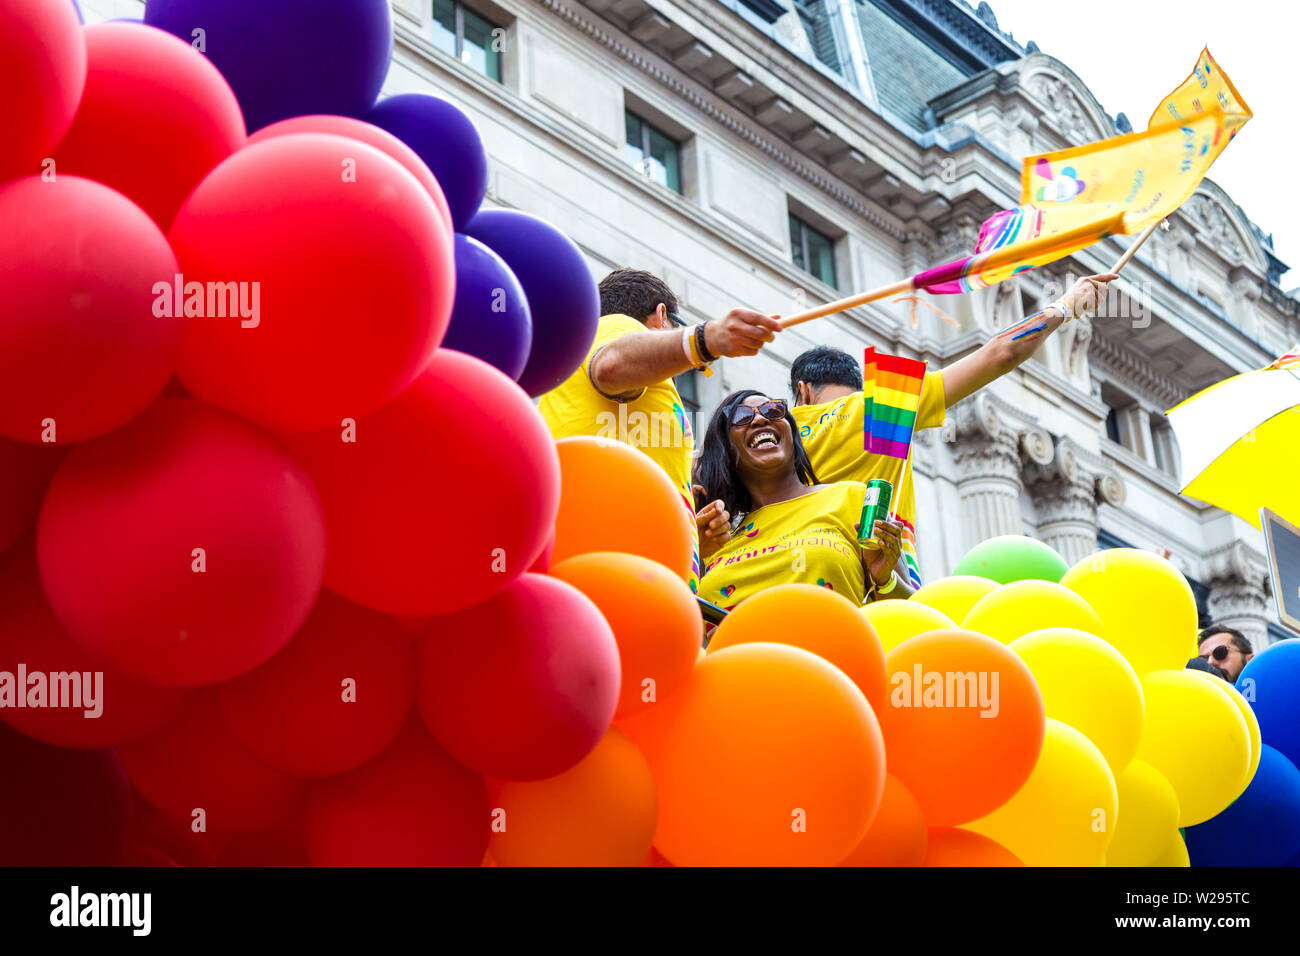 6 July 2019 - People celebrating Pride on a float surrounded by colourful balloons, London Pride Parade, UK - Stock Image